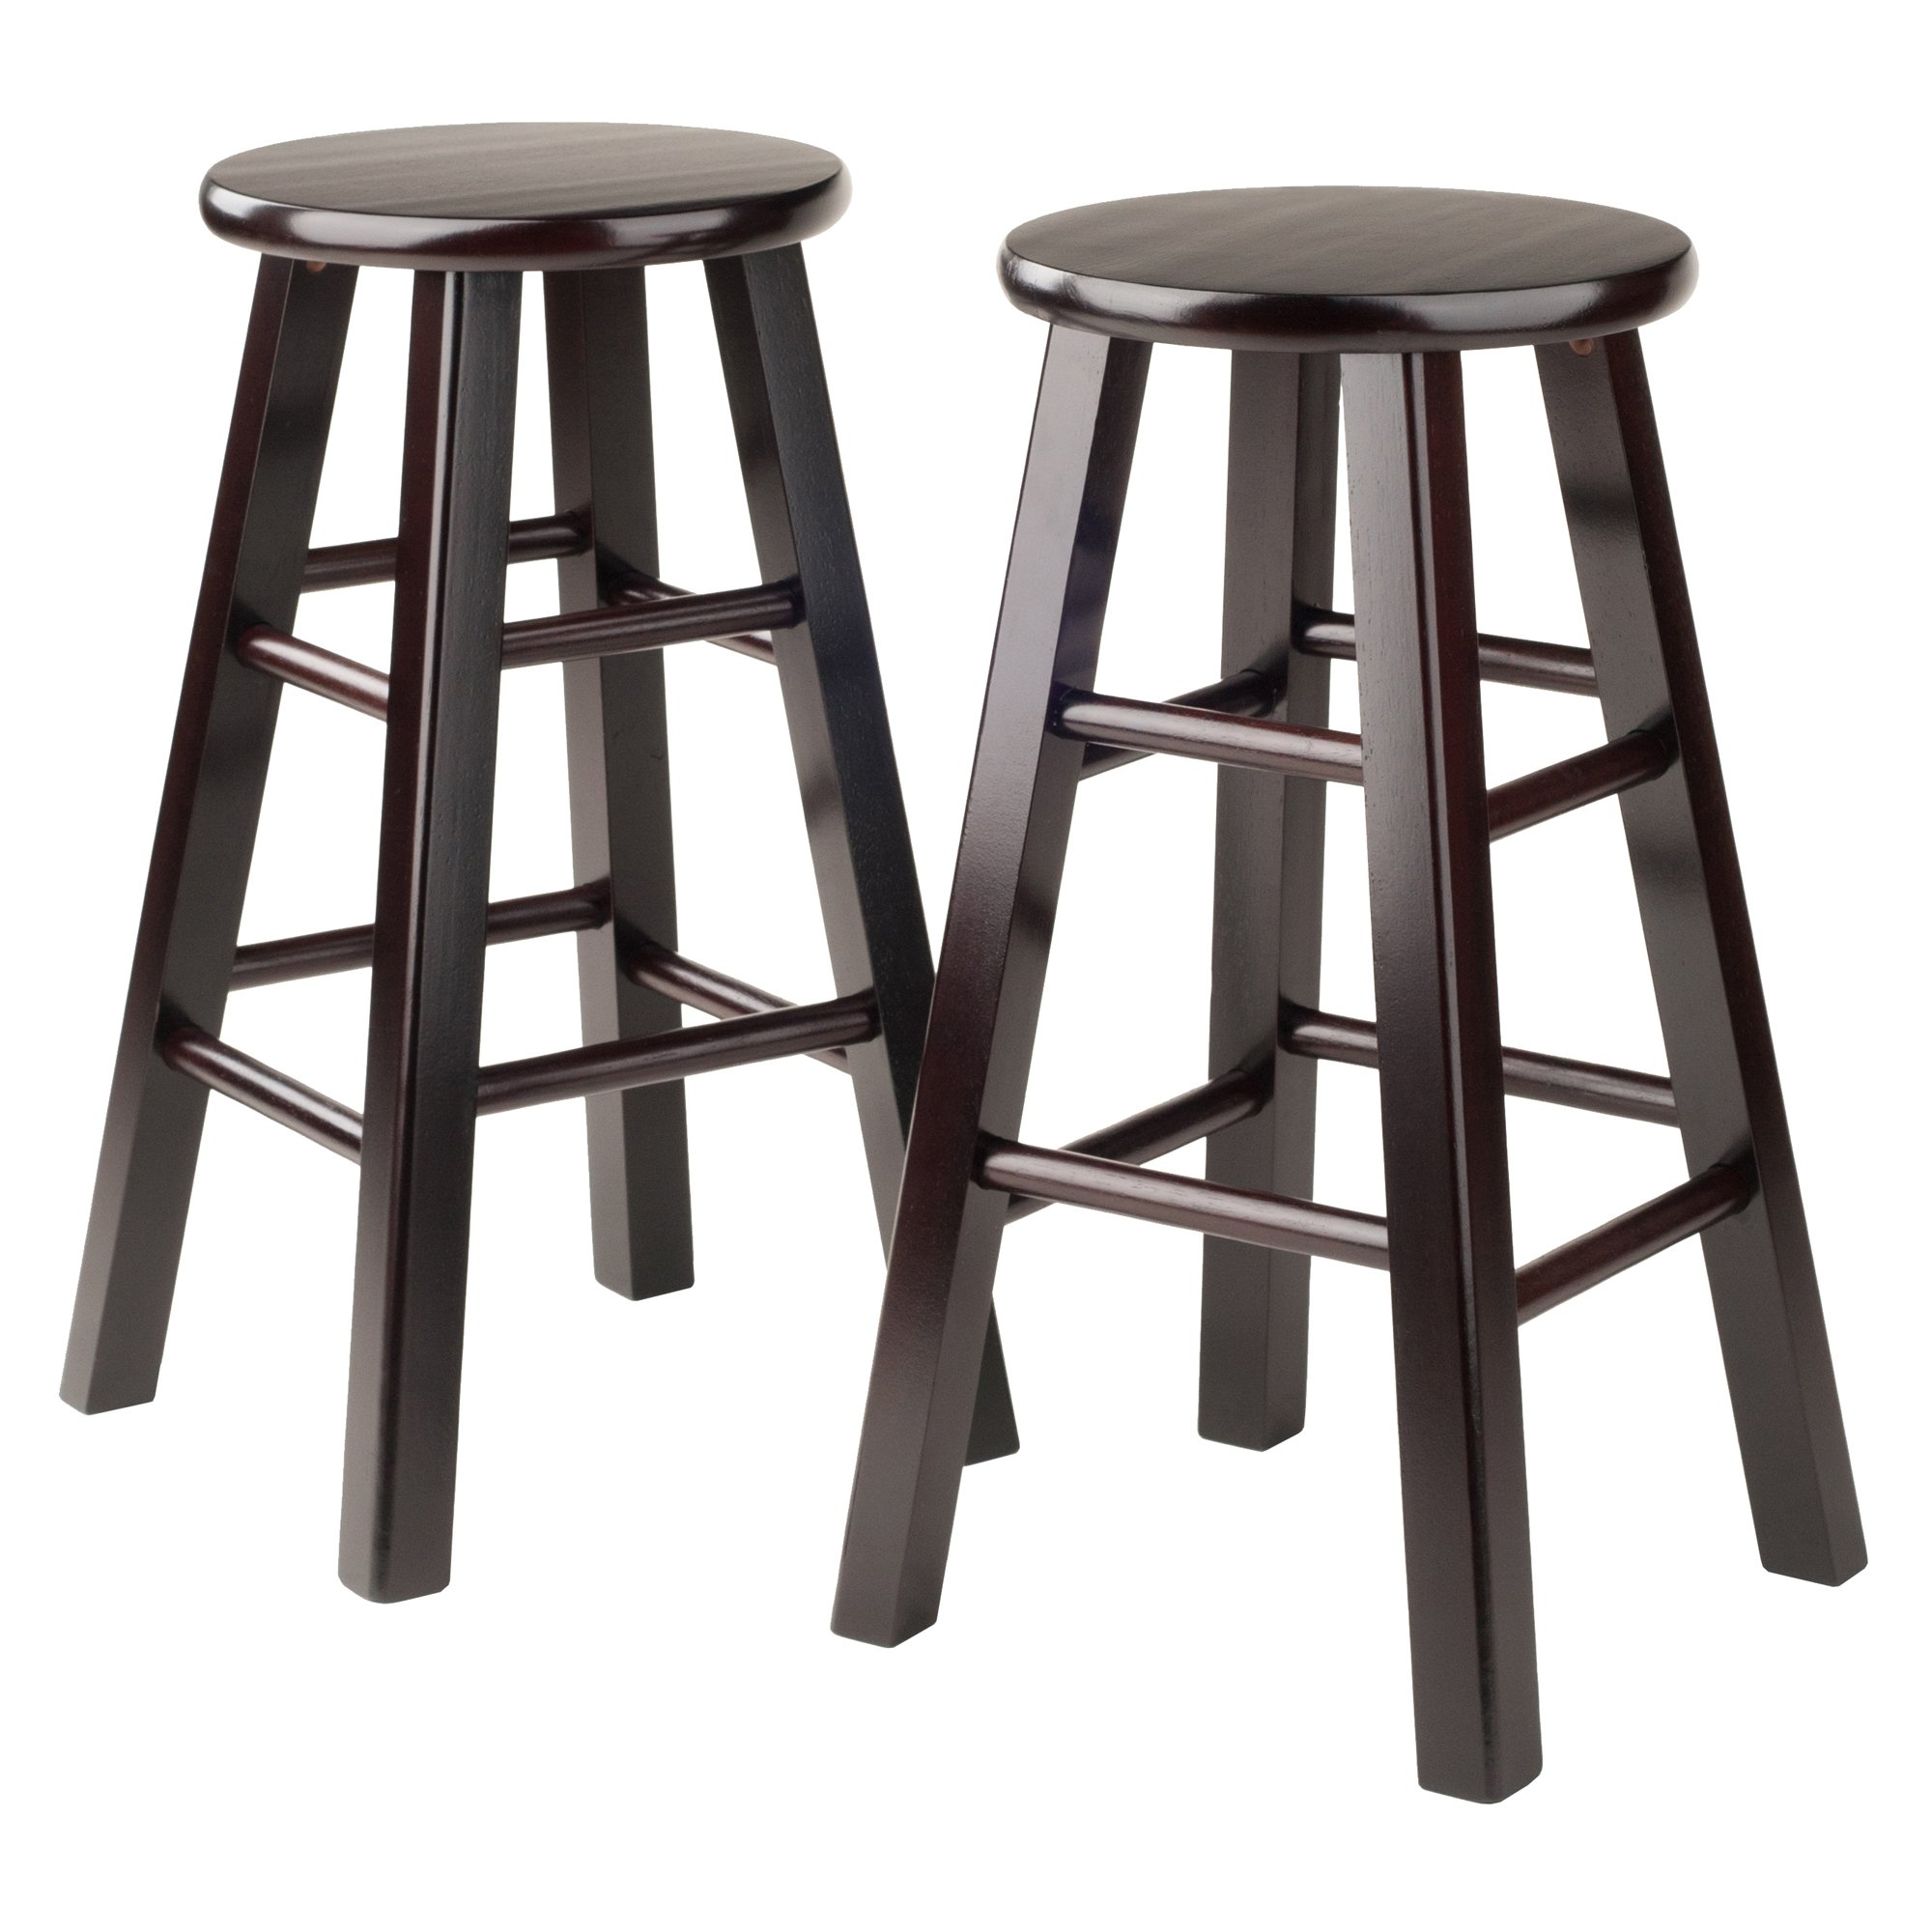 Winsome Counter Stool with Square Legs, 24-Inch, Espresso, Set of 2